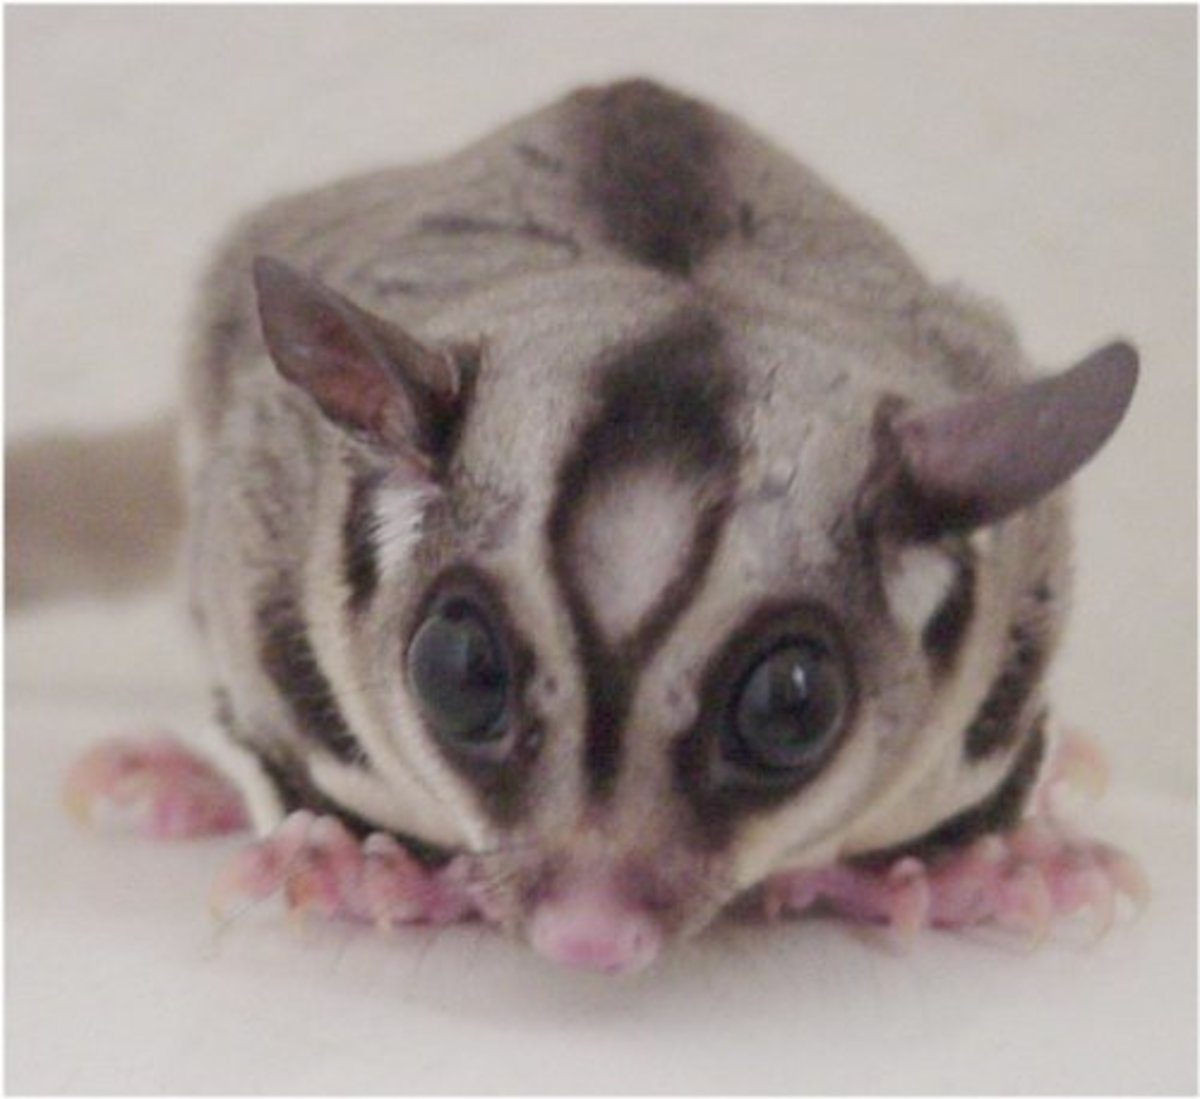 Male sugar glider sitting on a table.